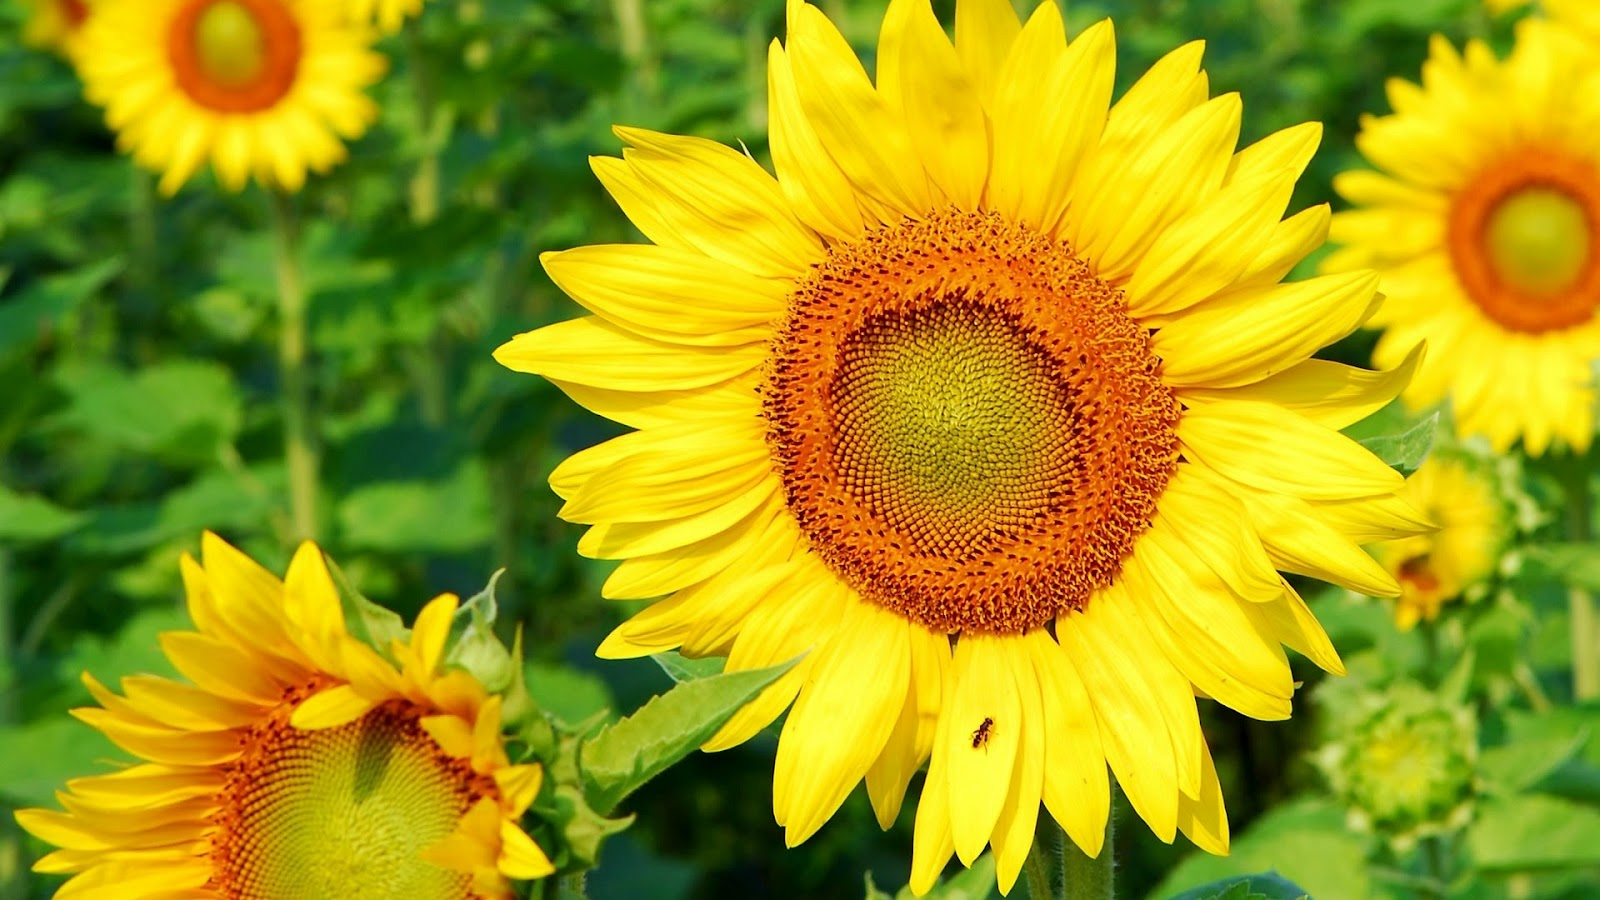 Your Wallpaper Sunflower Wallpaper